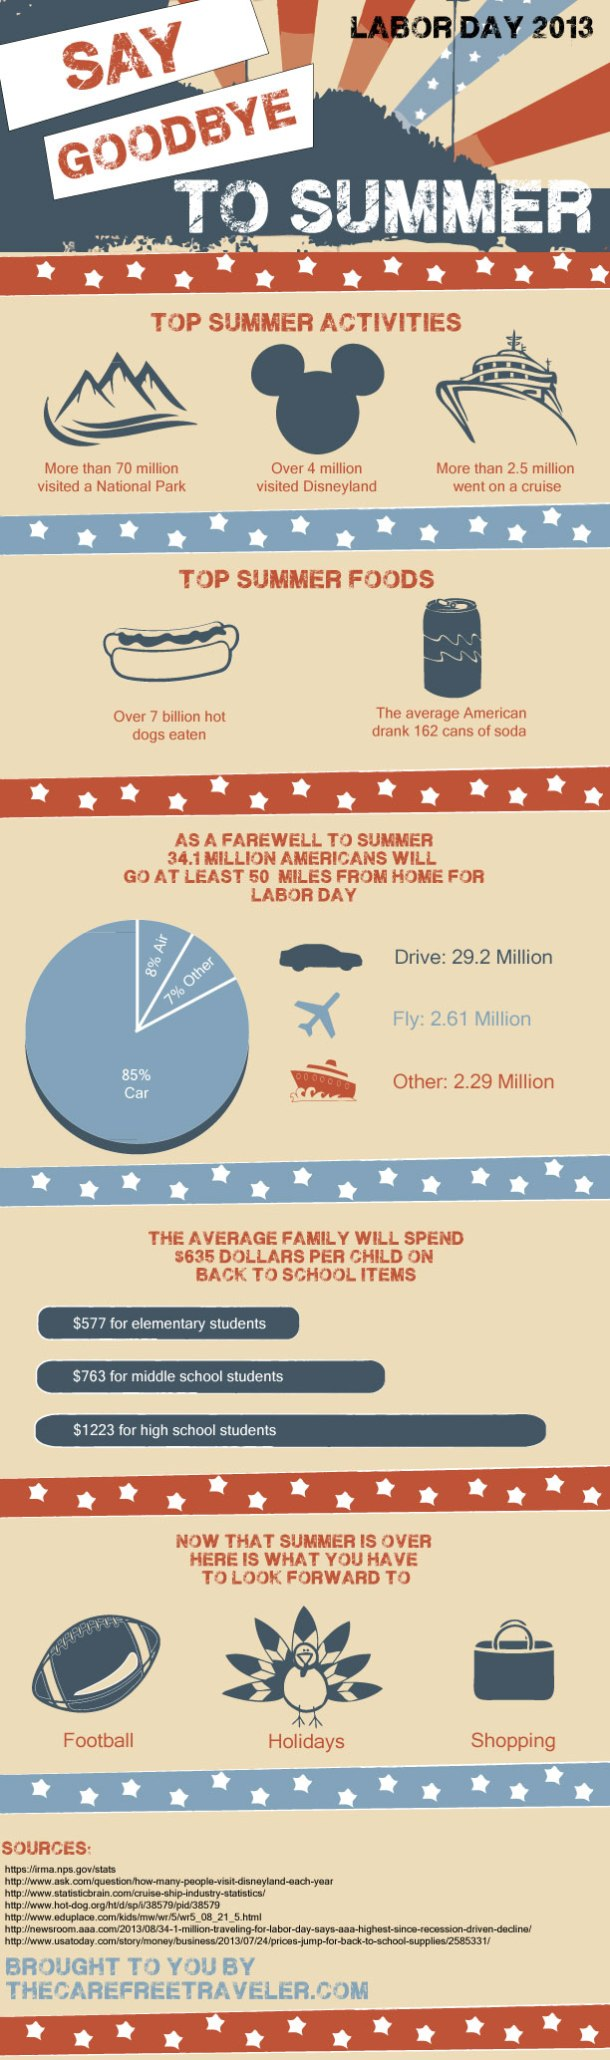 say-goodbye-to-summer-labor-day-infographic_5215a825e1ba7